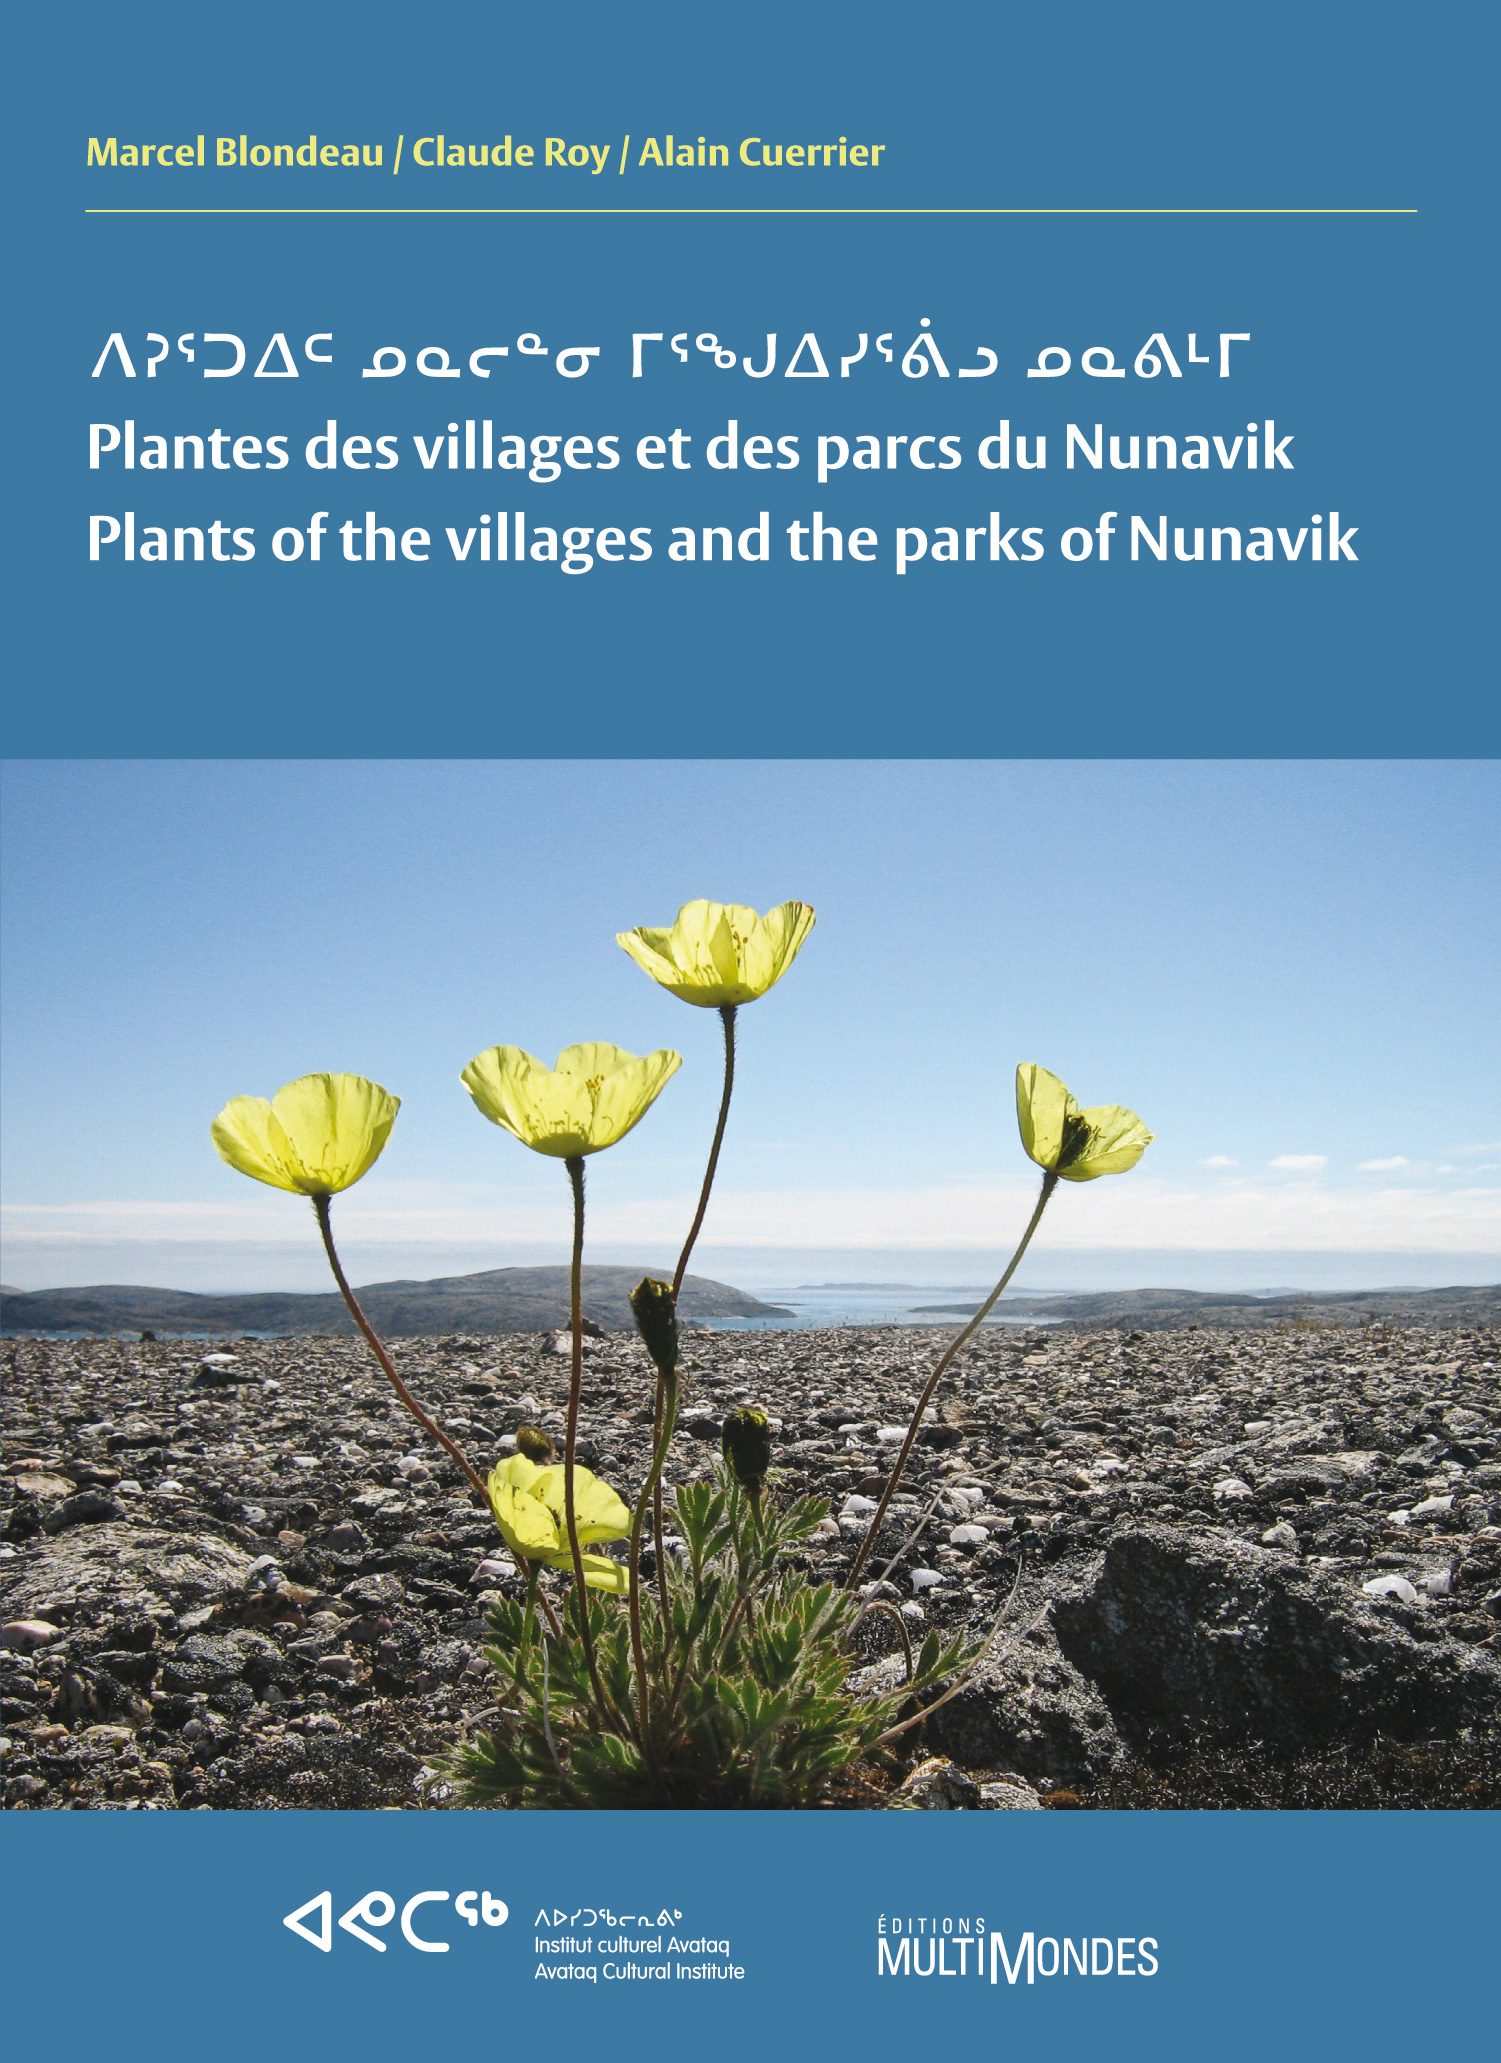 Plants of the Villages and Parks of Nunavik